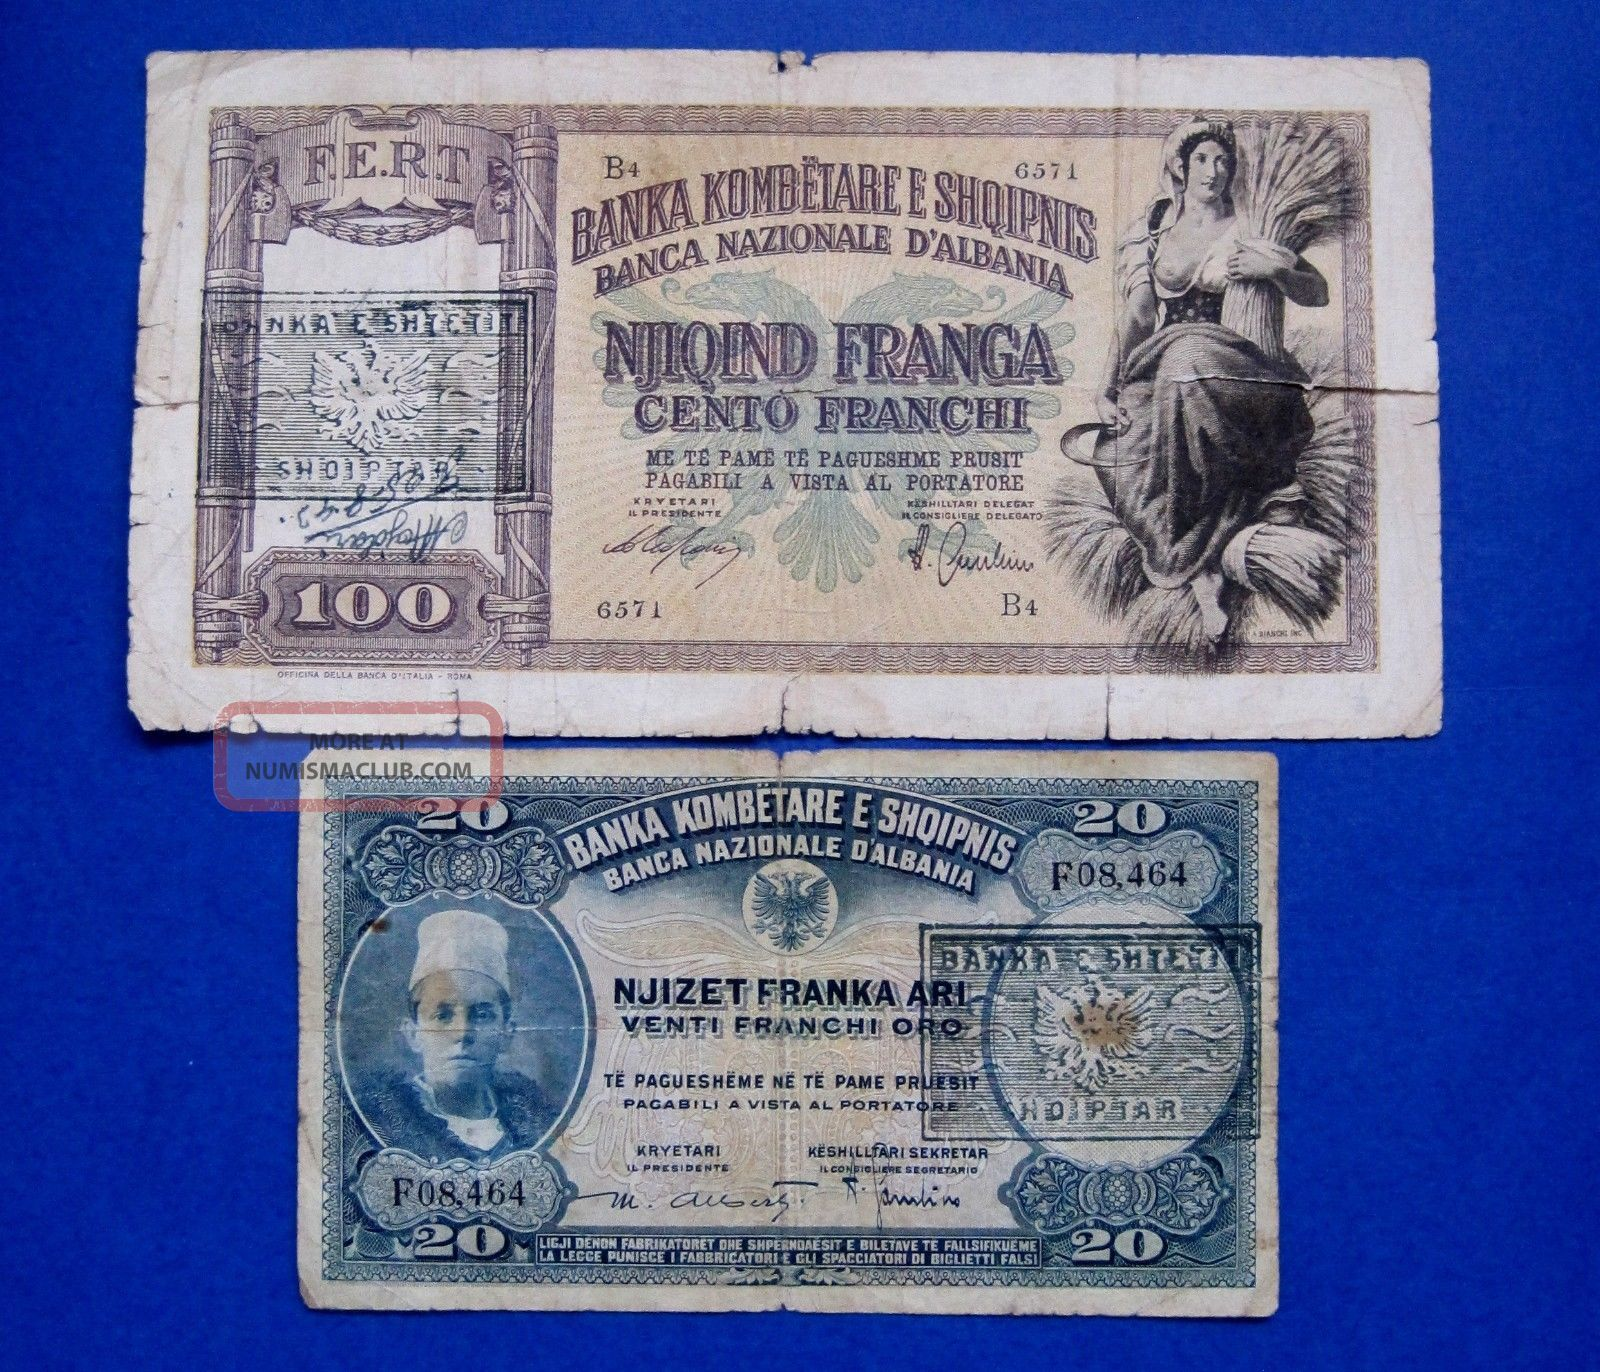 1945 Albania Banknote Franka Ar 100 Franga 2 Pc Europe photo